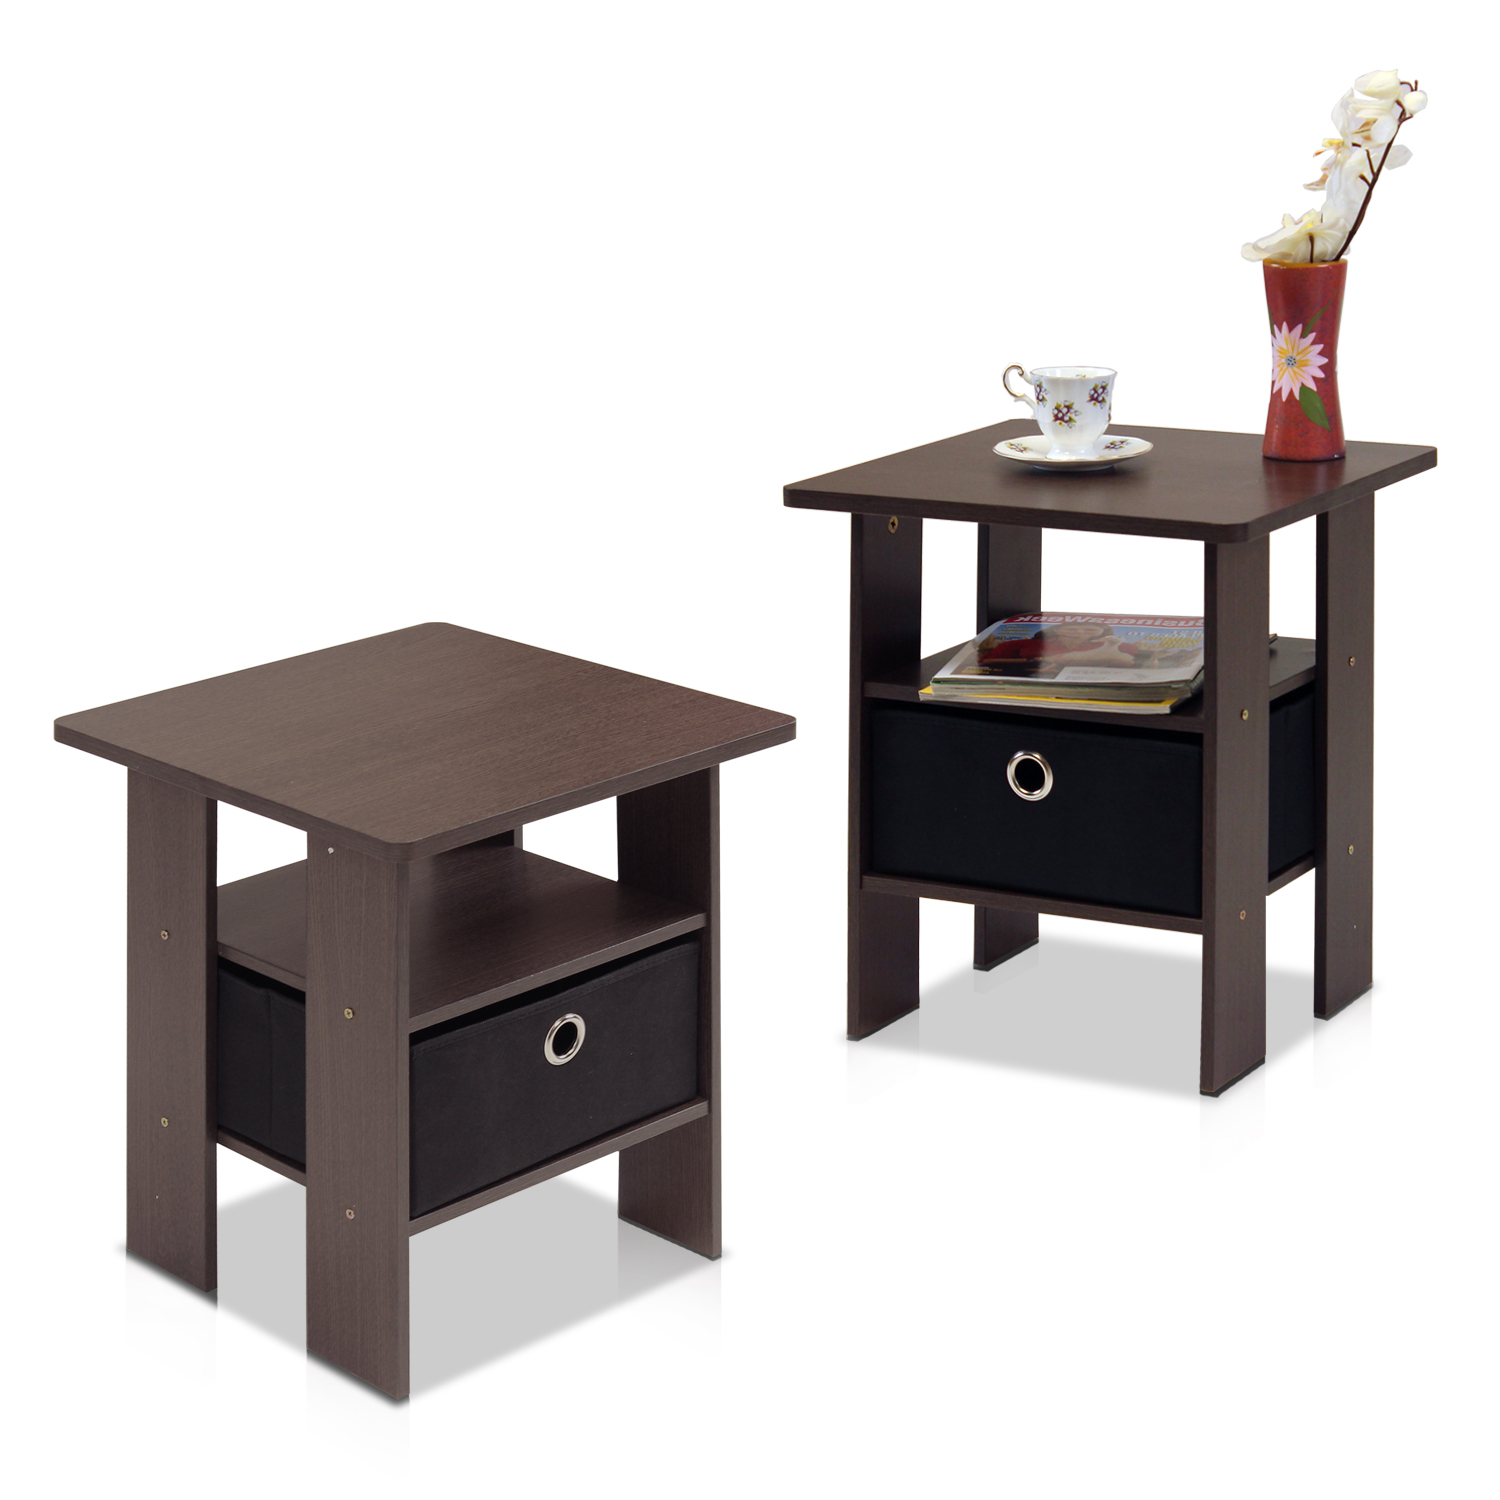 Delightful Petite End Table Bedroom Night Stand With Foldable Bin Drawer, Multiple  Colors   Walmart.com